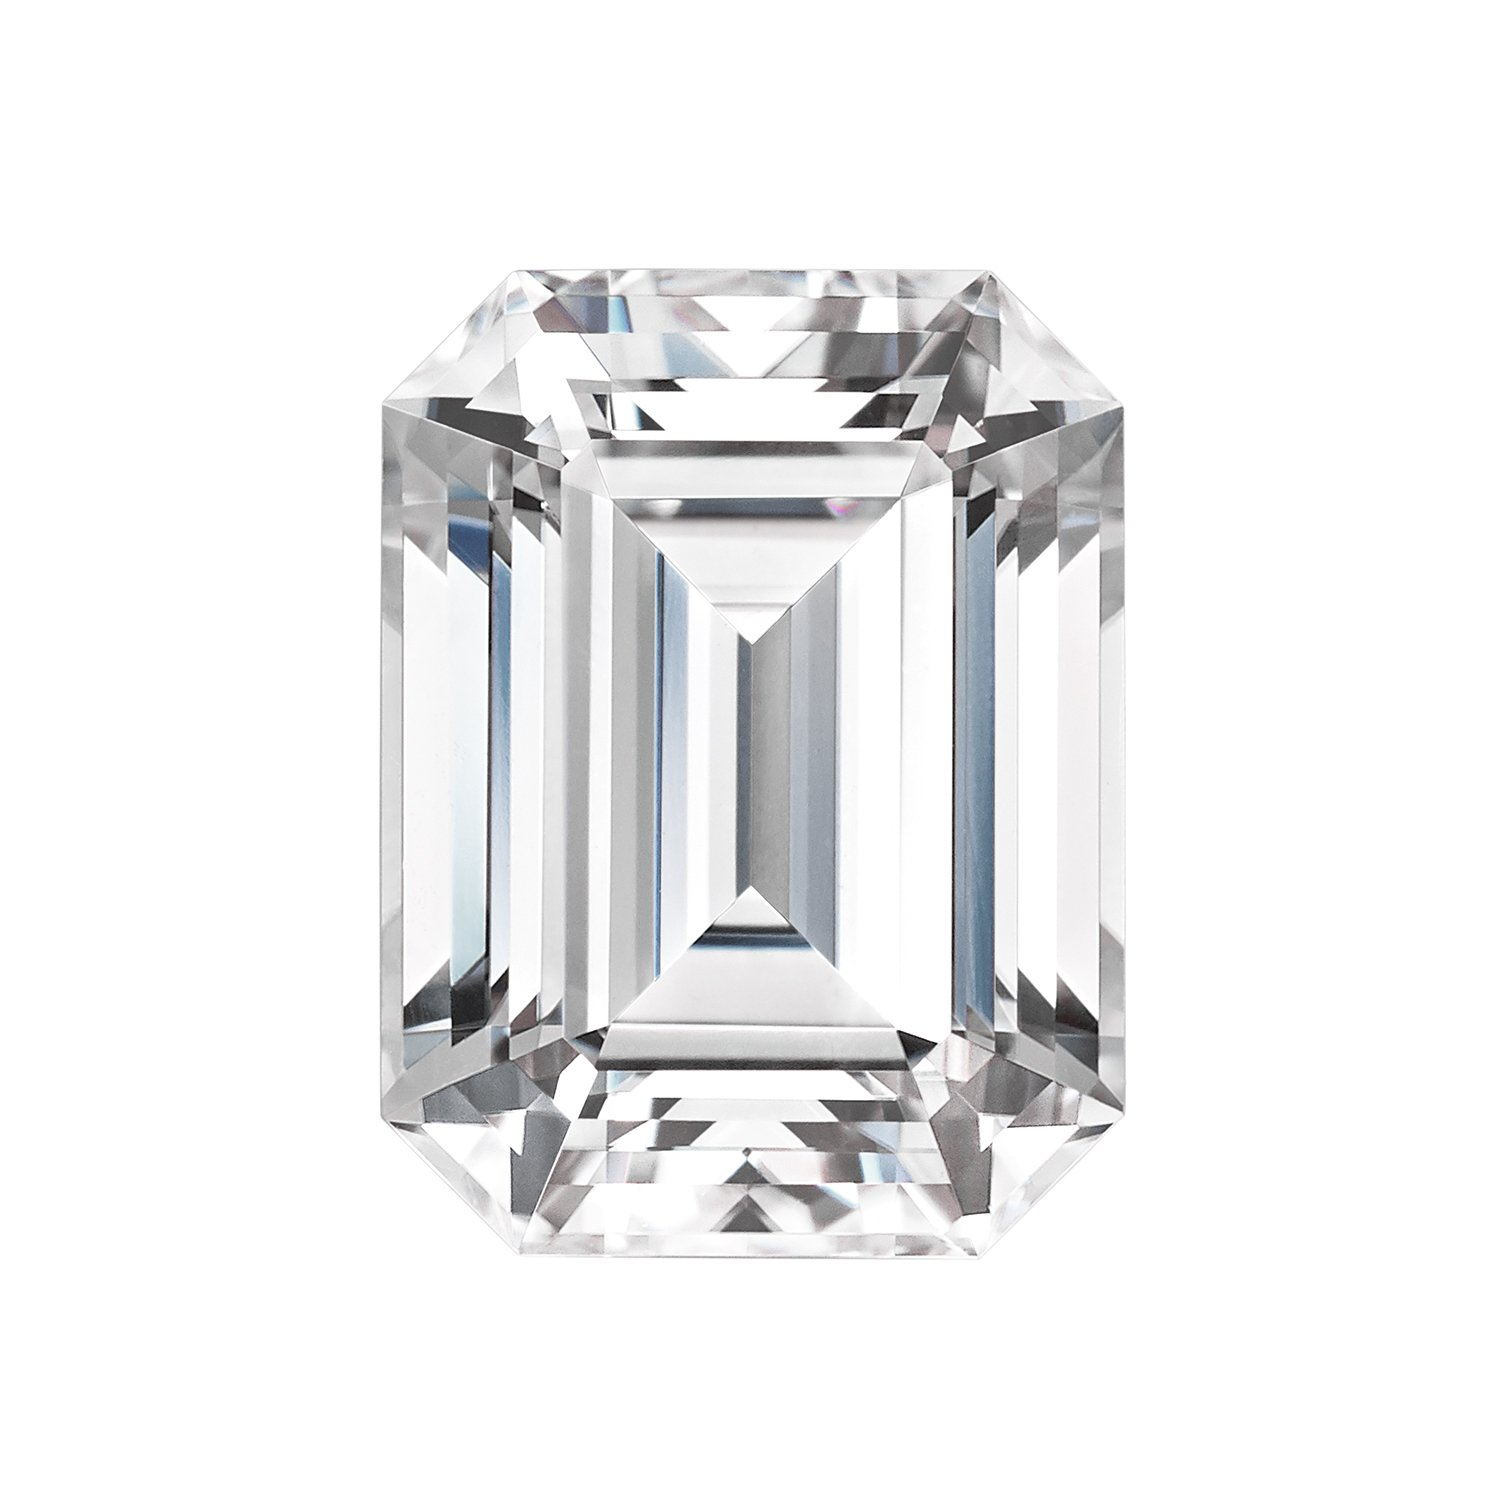 Forever One Emerald Cut Moissanite 9x7mm by Charles & Colvard, D-E-F color range